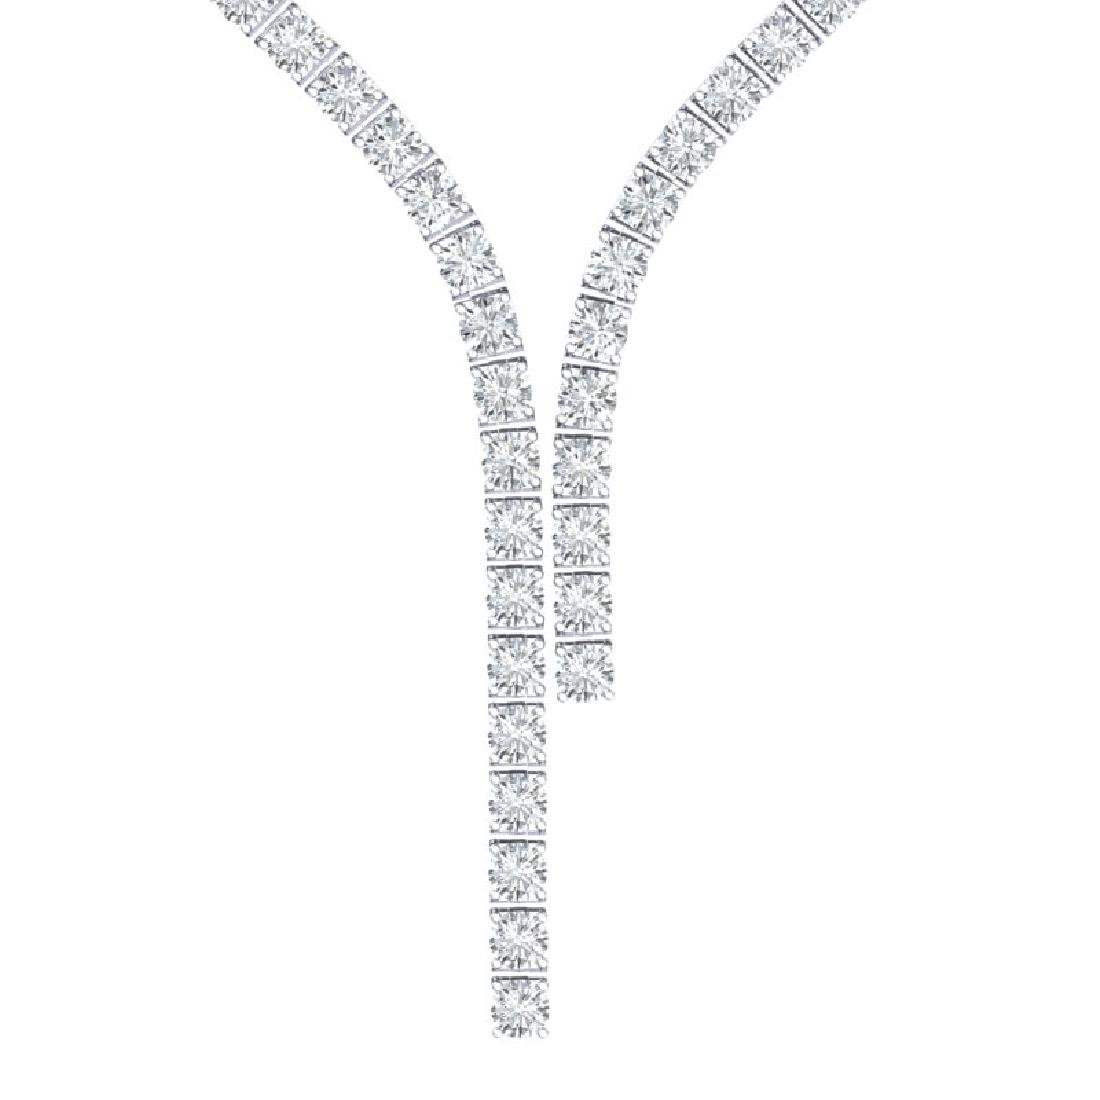 25 CTW Certified VS/SI Diamond Necklace 18K White Gold